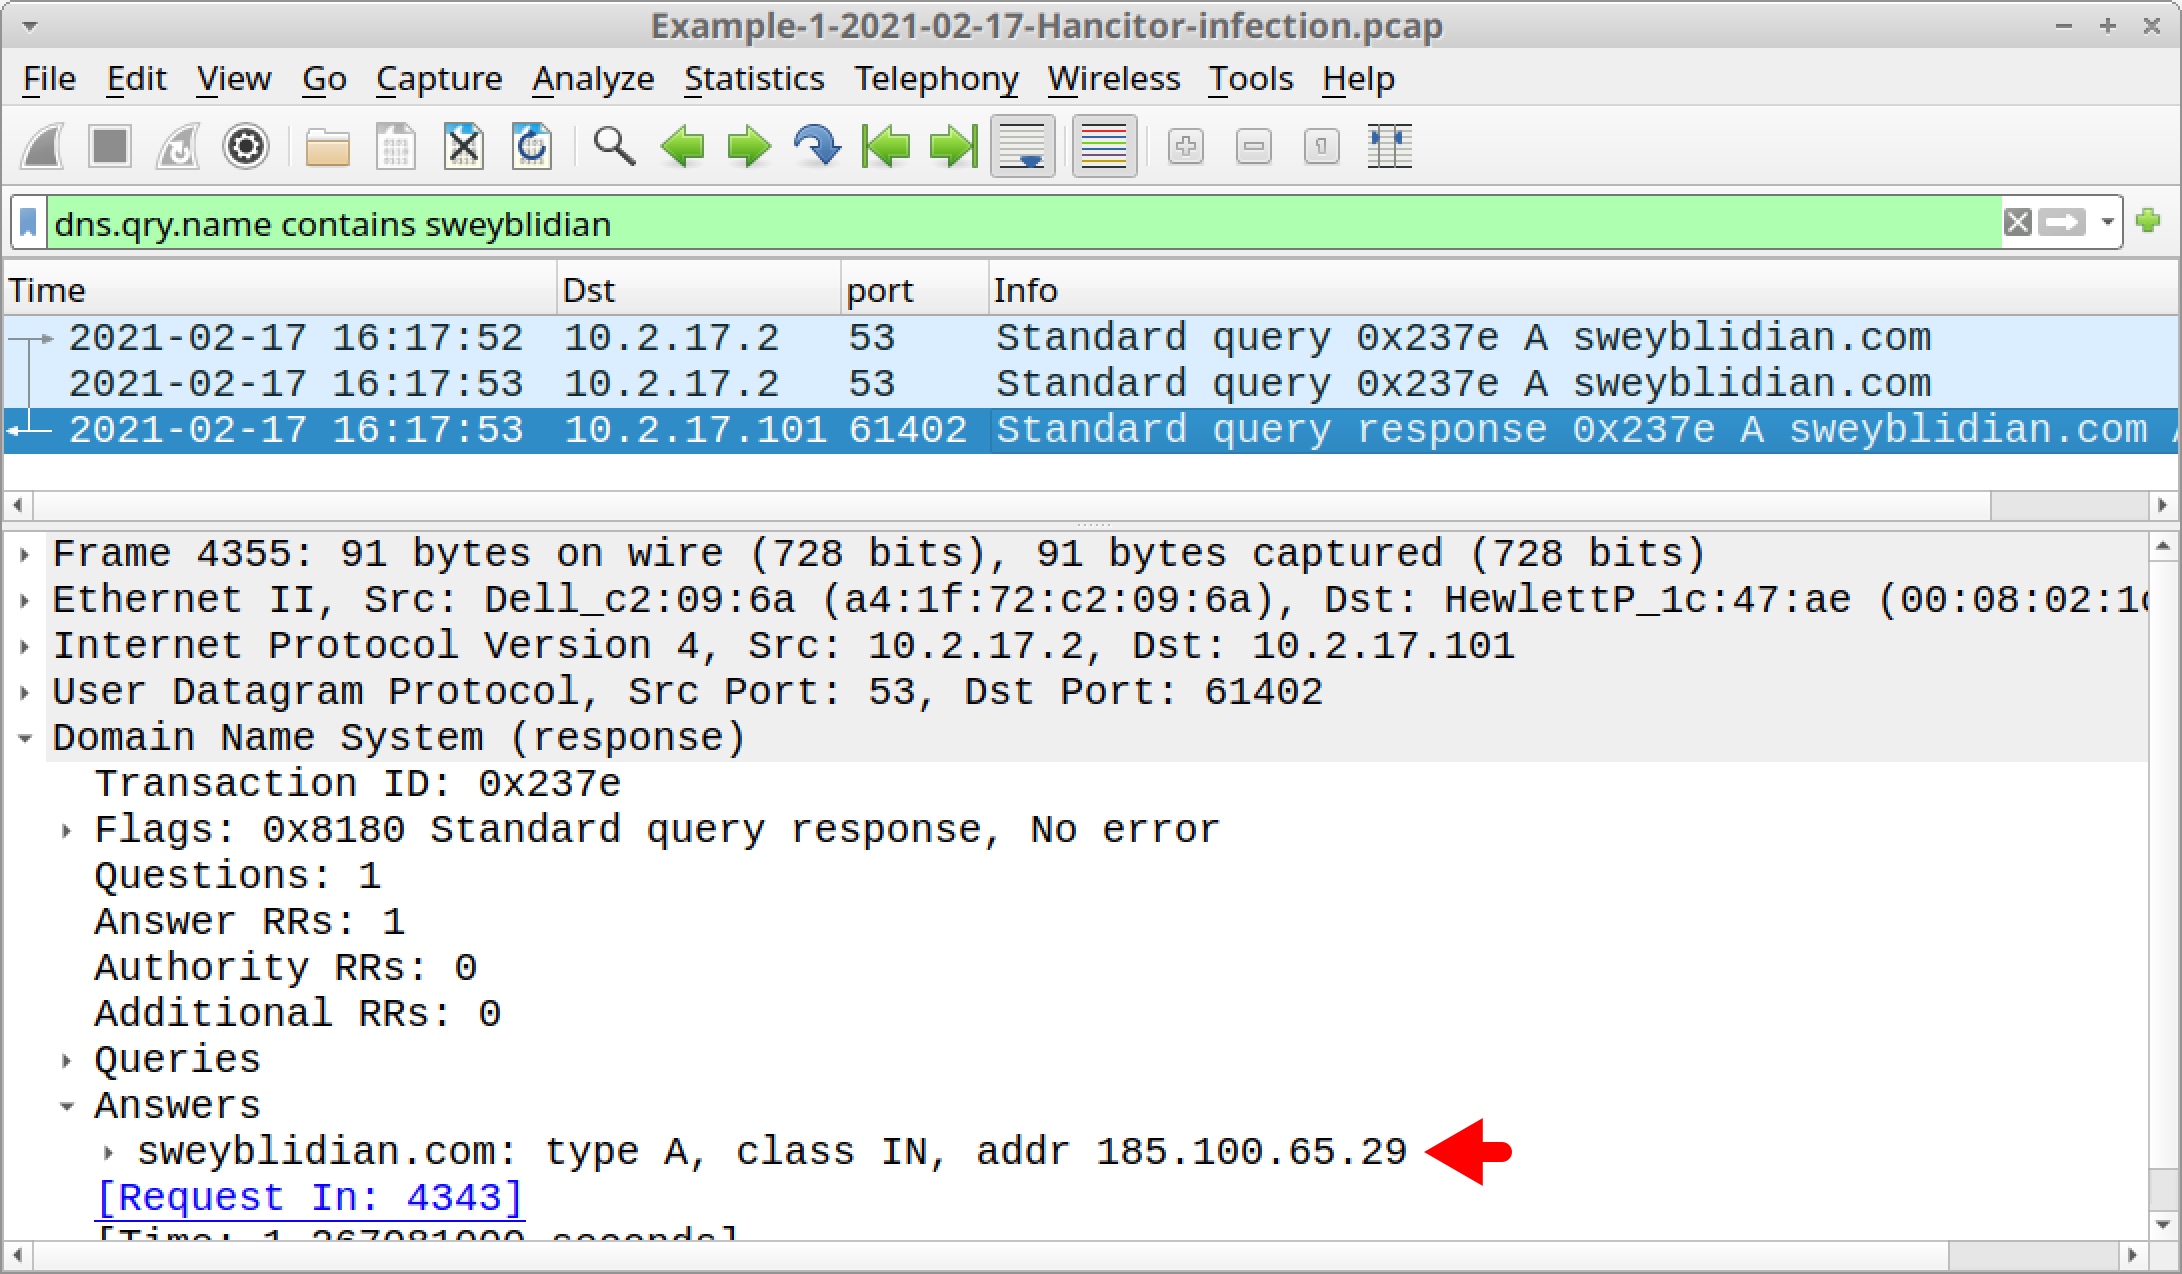 The red arrow indicates the IP address used for sweyblidian[.]com